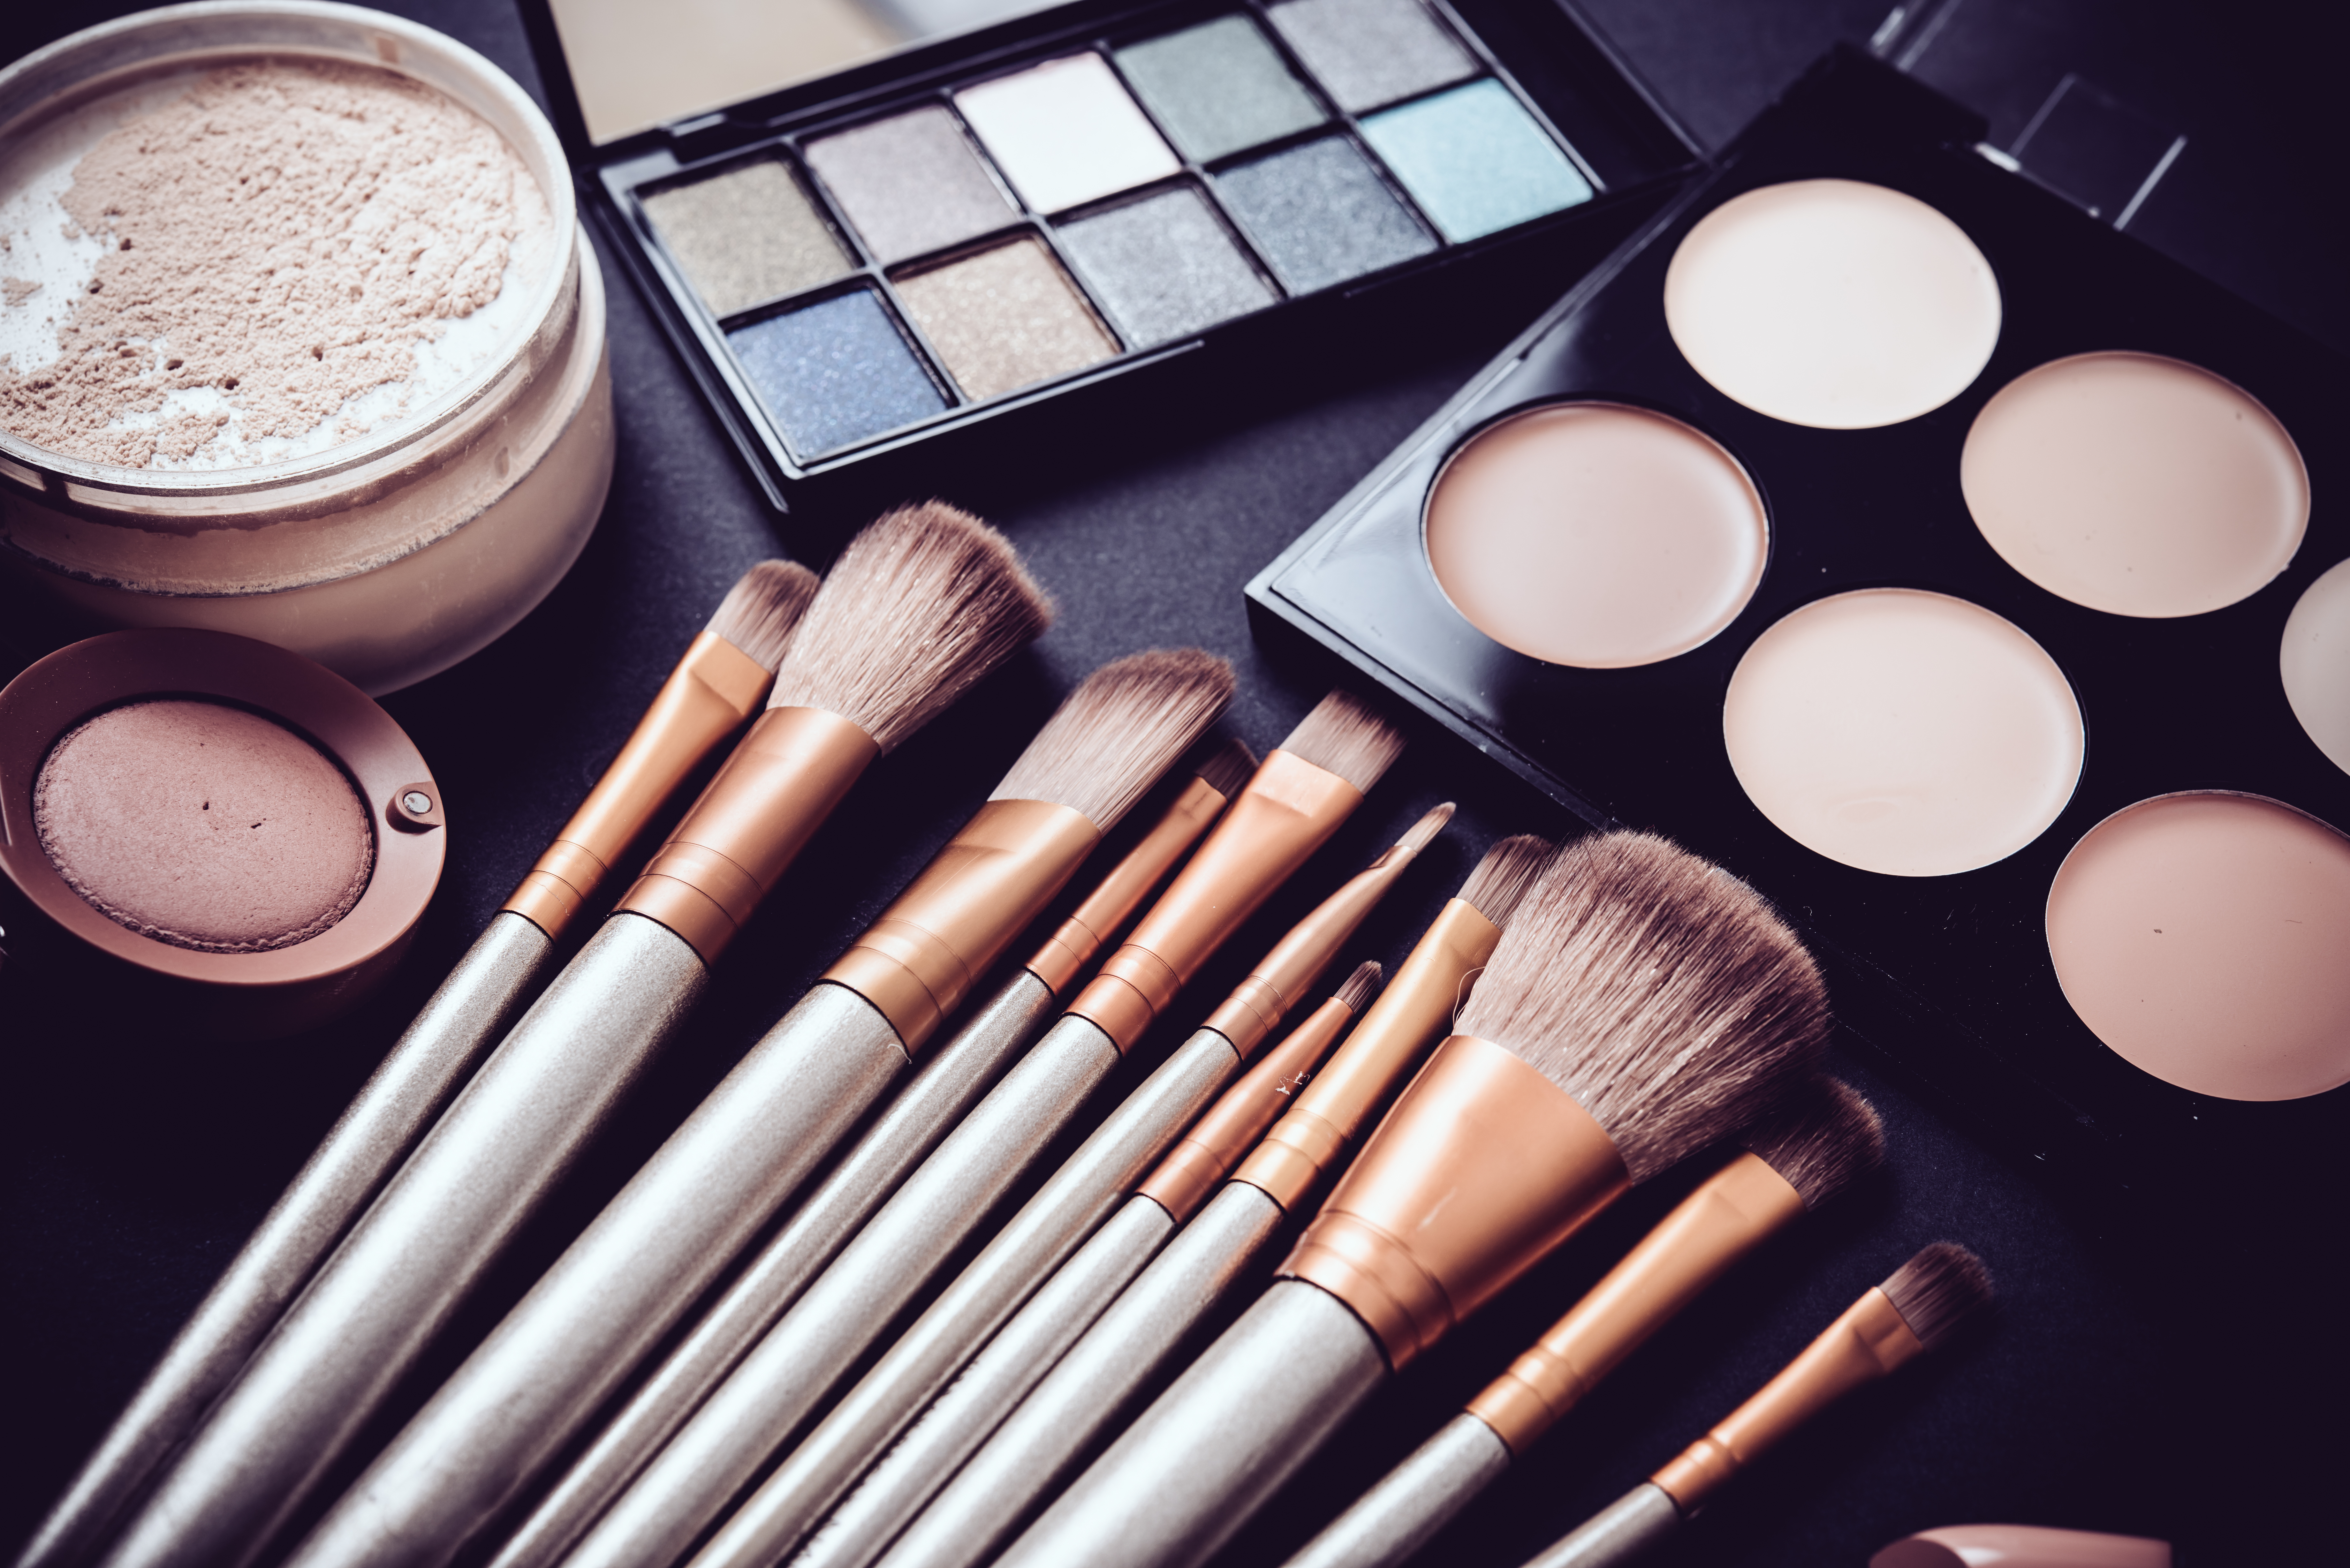 Eyeshadow, brushes, and other makeup products